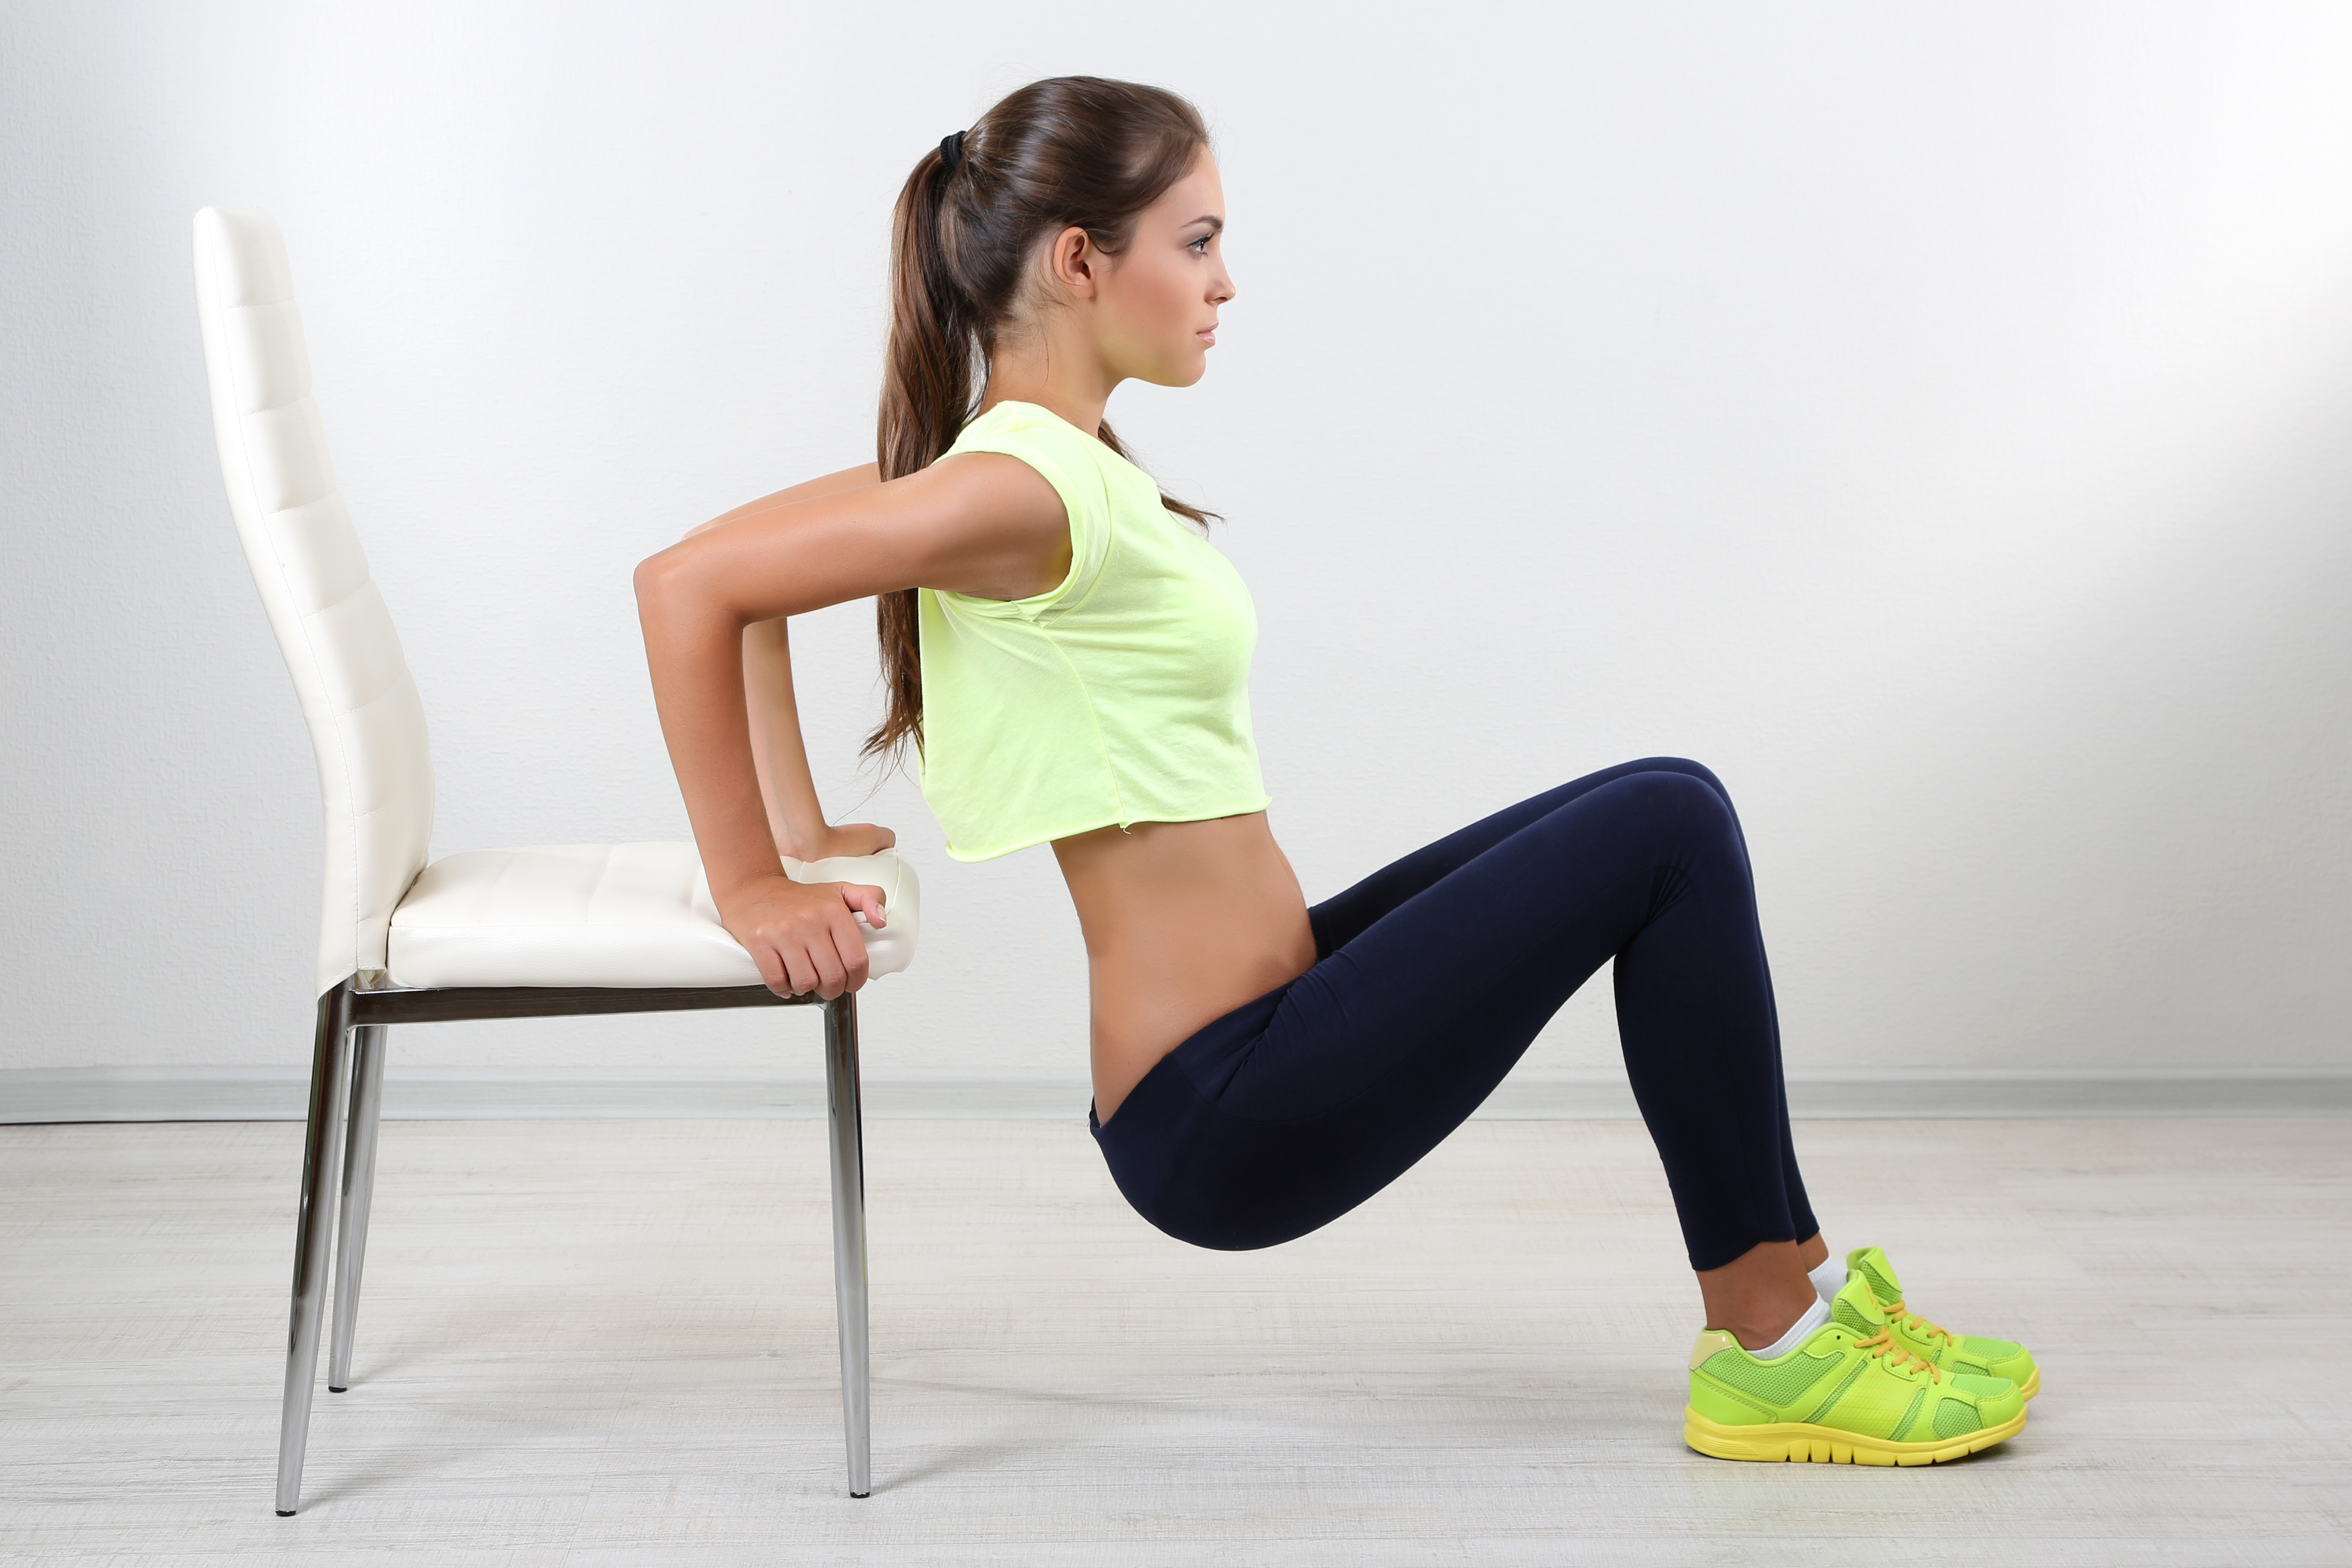 Killer Home Arm Workout Without Weights